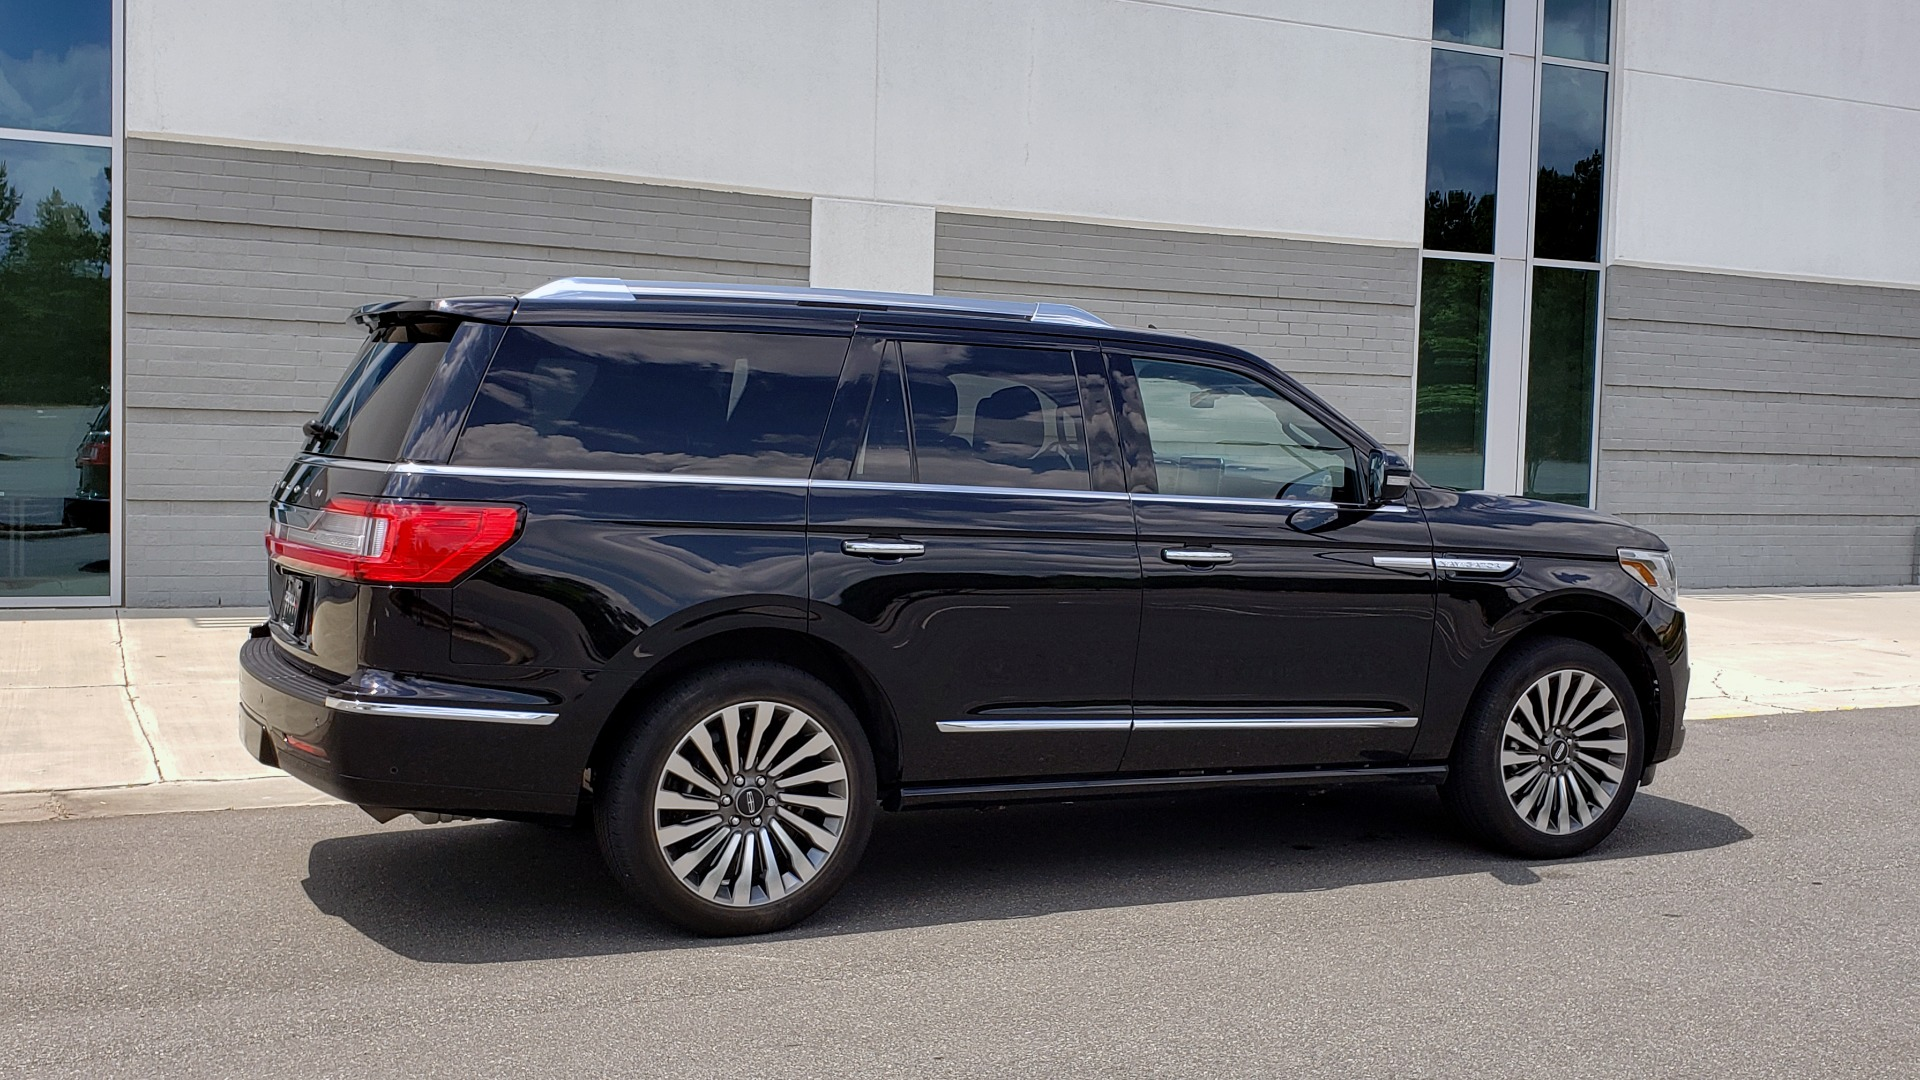 Used 2019 Lincoln NAVIGATOR RESERVE 4X4 / NAV / PANO-ROOF / REVEL ULTIMA AUDIO / 3-ROW / REARVIEW for sale $74,795 at Formula Imports in Charlotte NC 28227 8